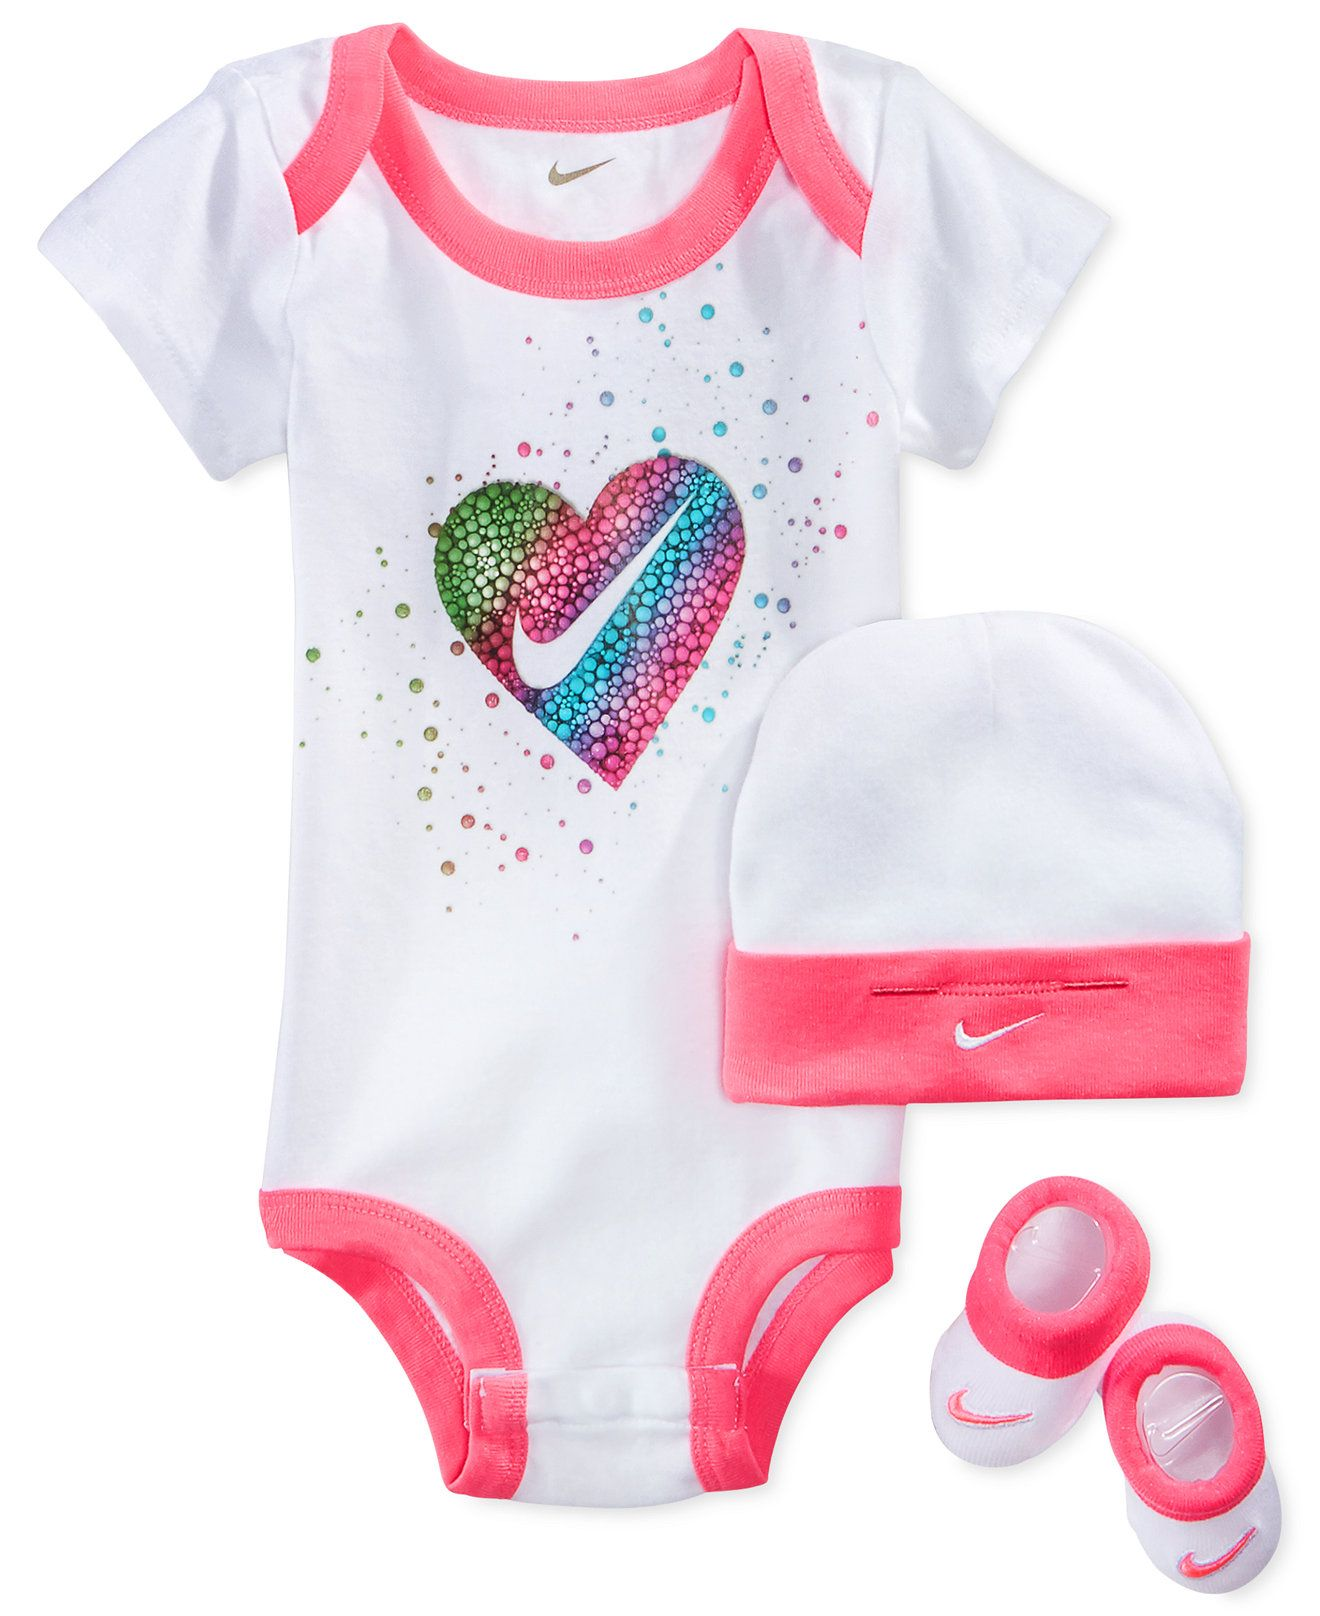 e4f8fc13d002 Kids fashion.....baby girl